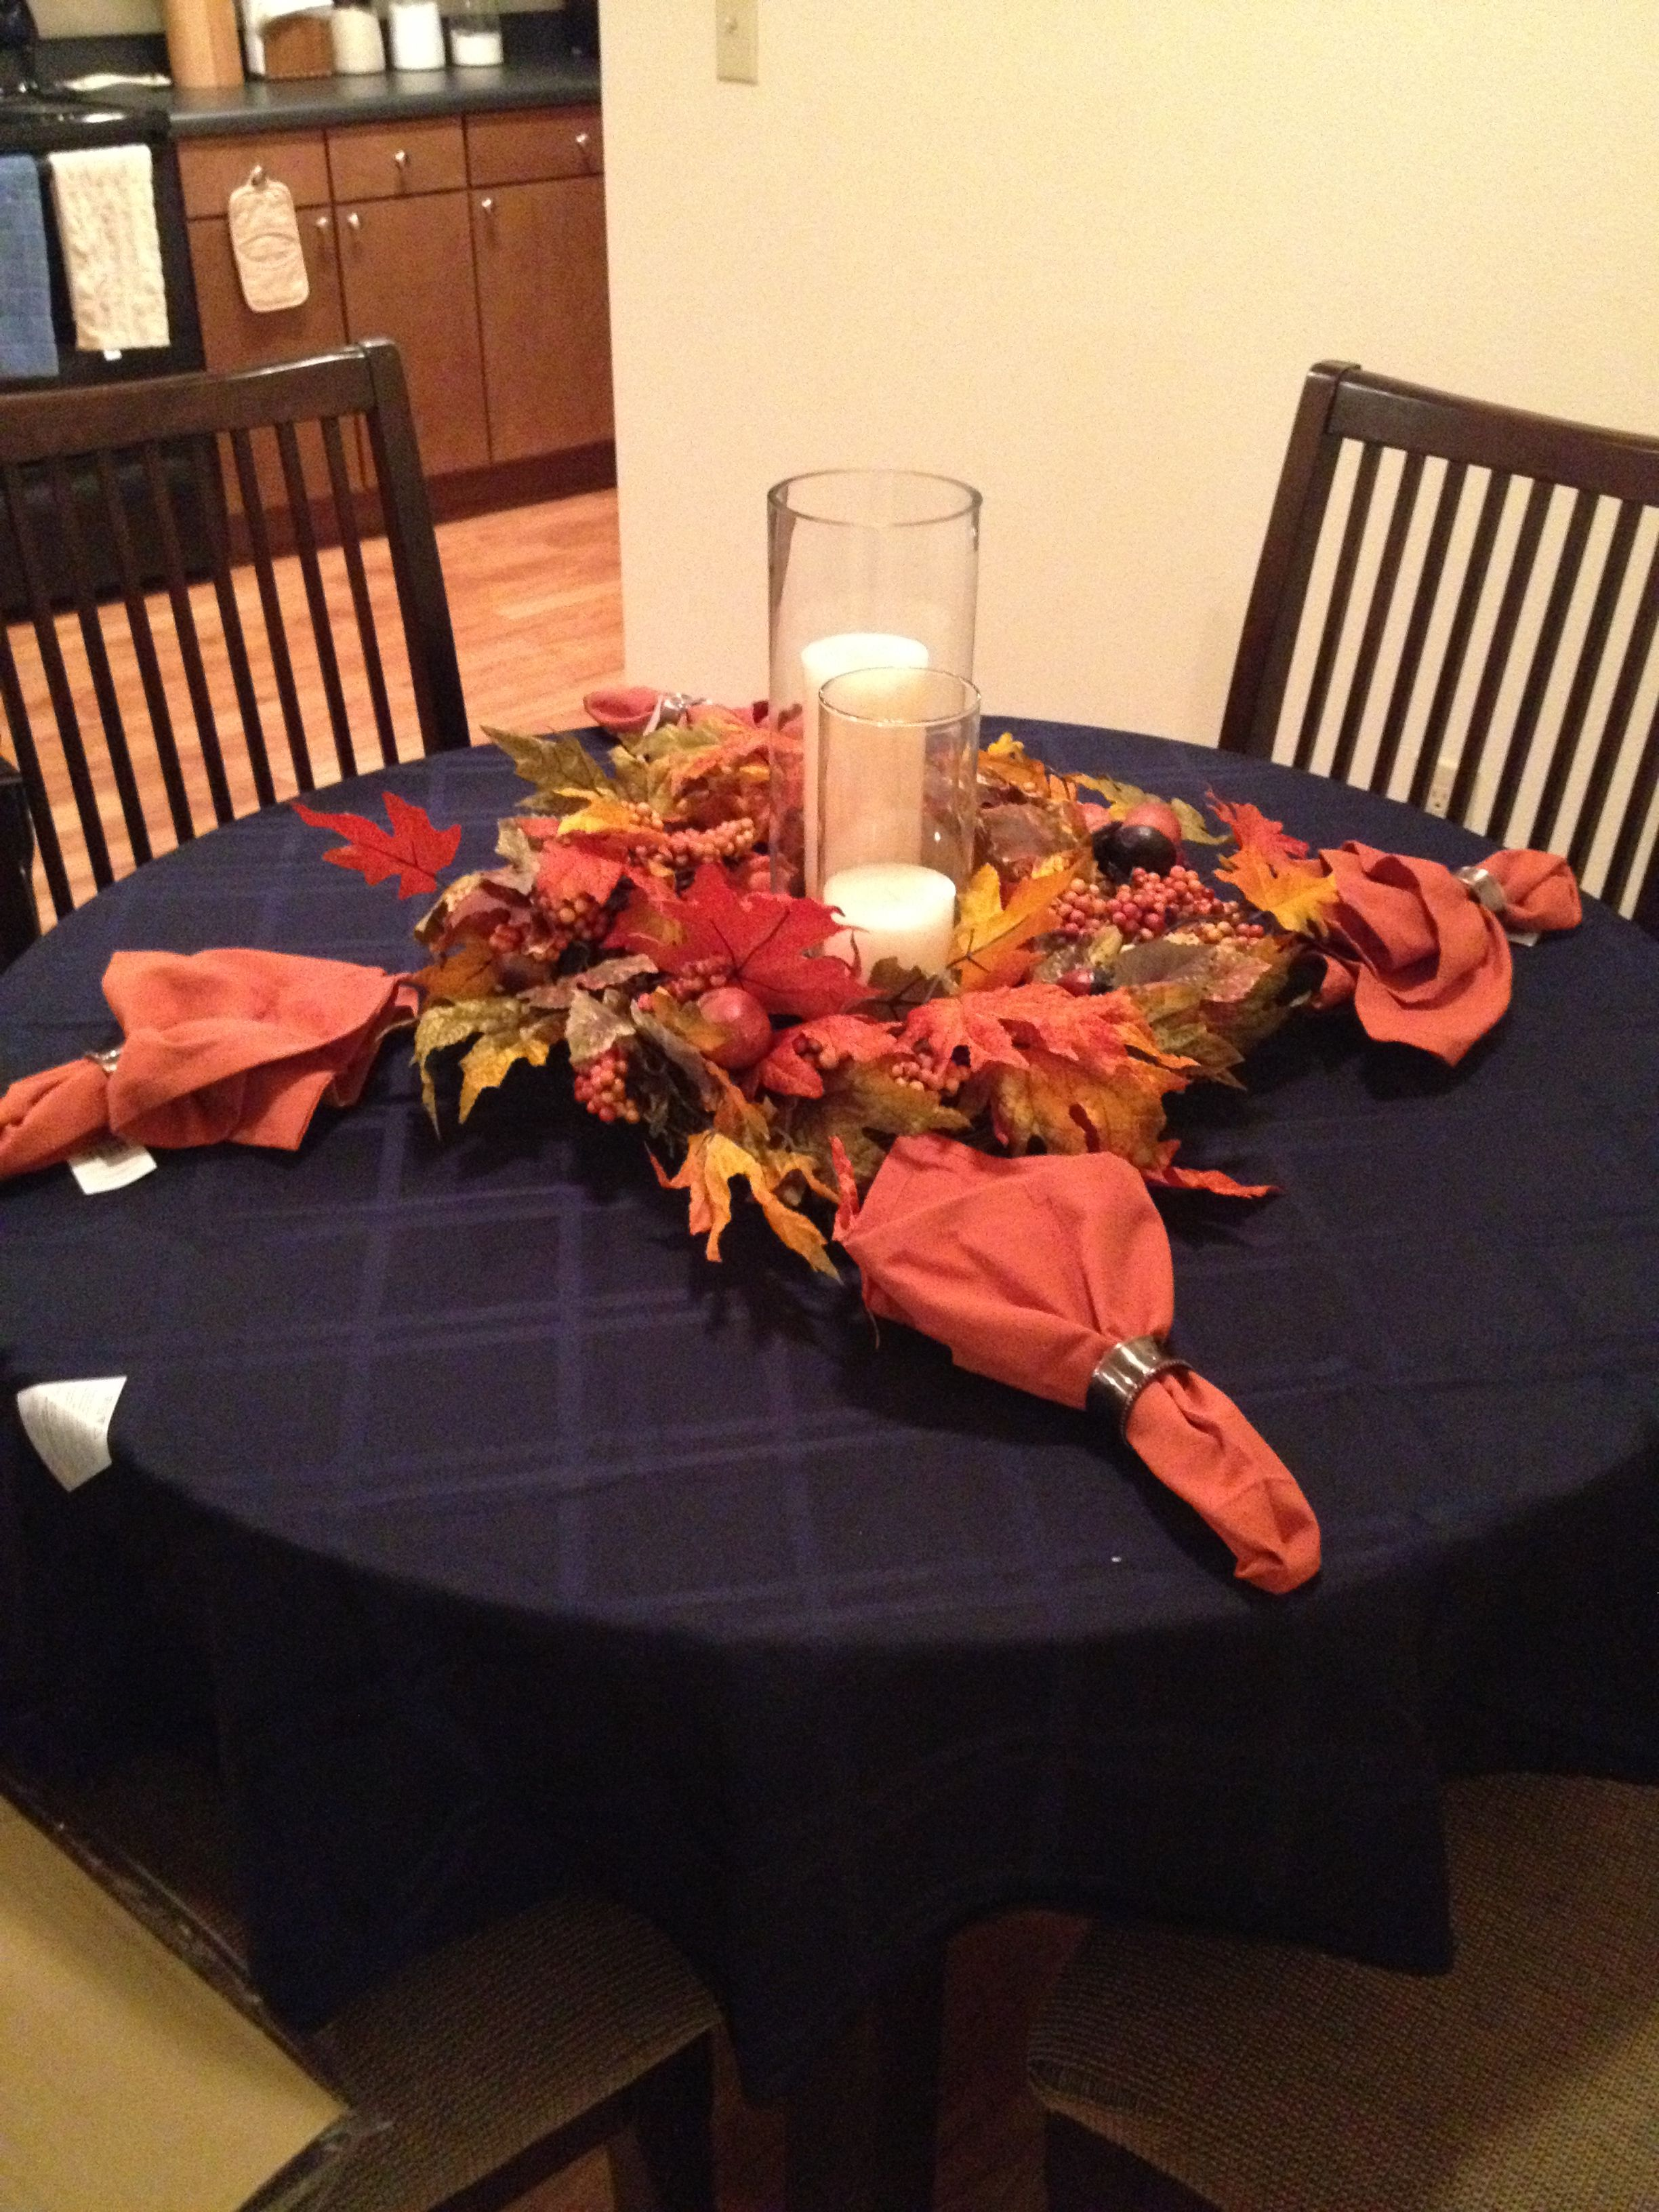 Thanksgiving Table Set Up Bed Bath Beyond Thanksgiving Table Decorations Thanksgiving Table Settings Table Decorations